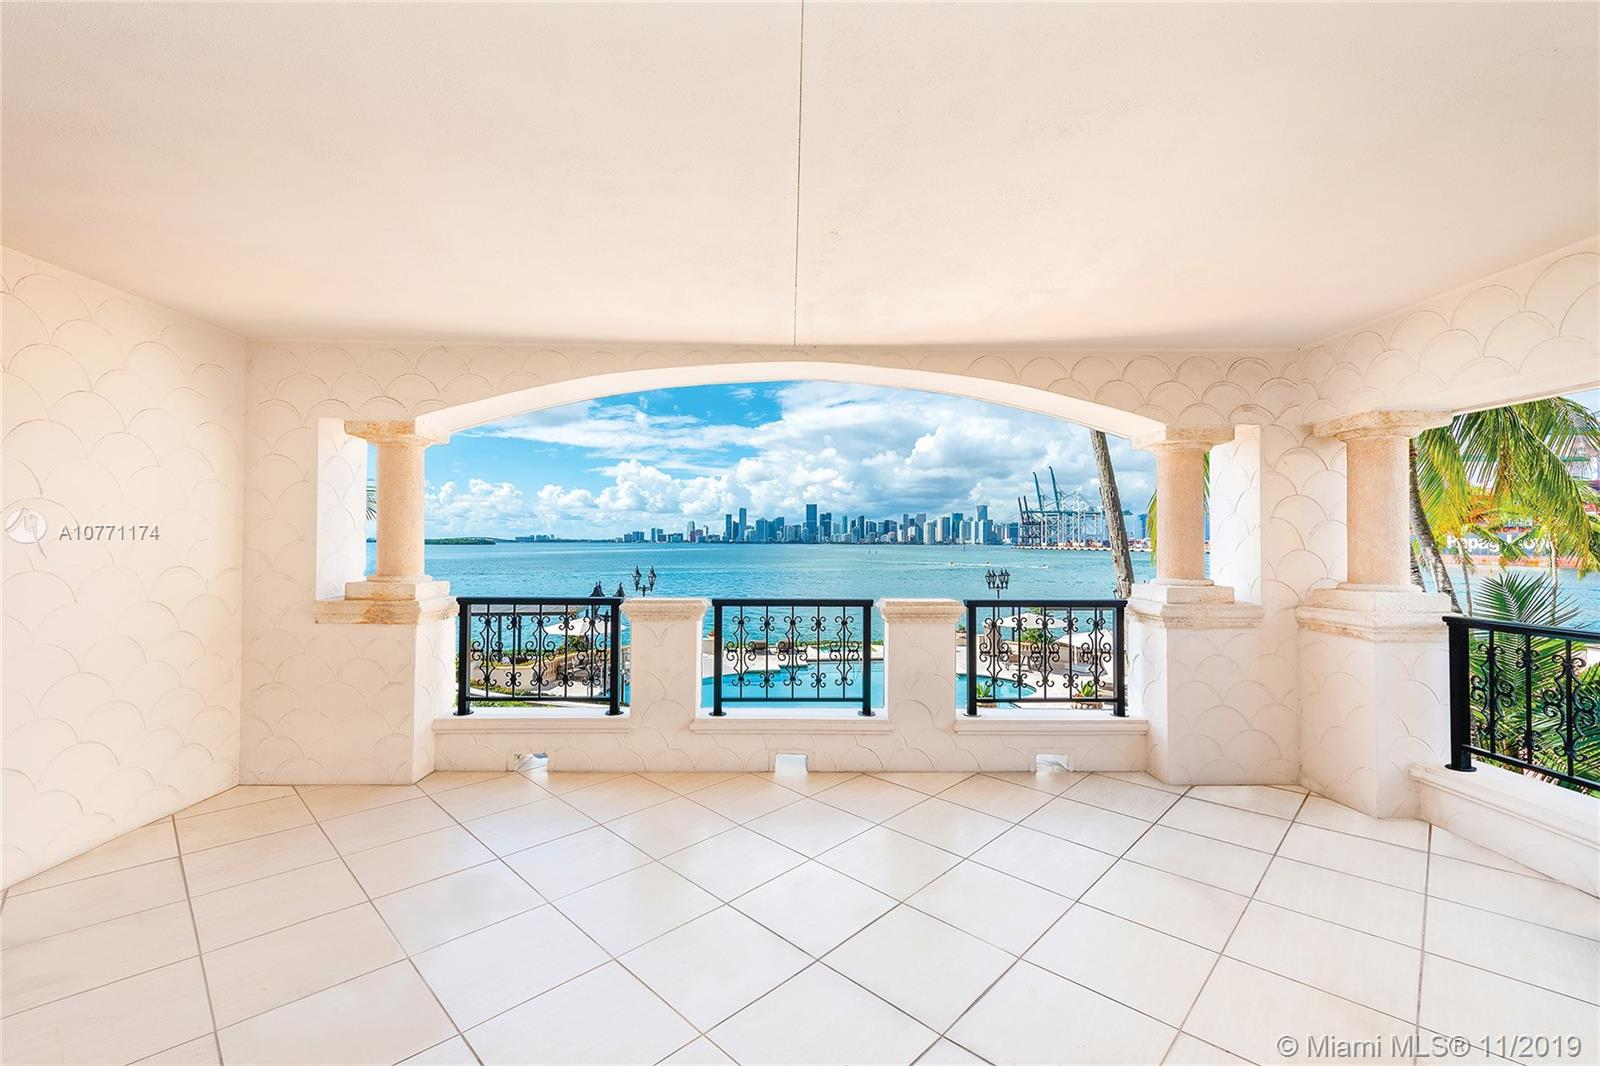 This beautiful corner unit on Fisher Island offers amazing unobstructed panoramic sunset views of the Miami skyline and Biscayne Bay. The 5200 building has been completely renovated to new condition plus beautiful water features have been added. The 3BR/3+1BA unit is ready to move in and features 2,740 square feet of interior space, marble floors throughout, large living and dining area with access to a wrapping terrace with direct open bay and downtown Miami skyline views. An open kitchen features a separate breakfast area and step-out access to a private side terrace with bay views. The master suite faces Biscayne Bay, and sports a marble master bath with double sinks and a sunken spa tub. This unit is a must see.